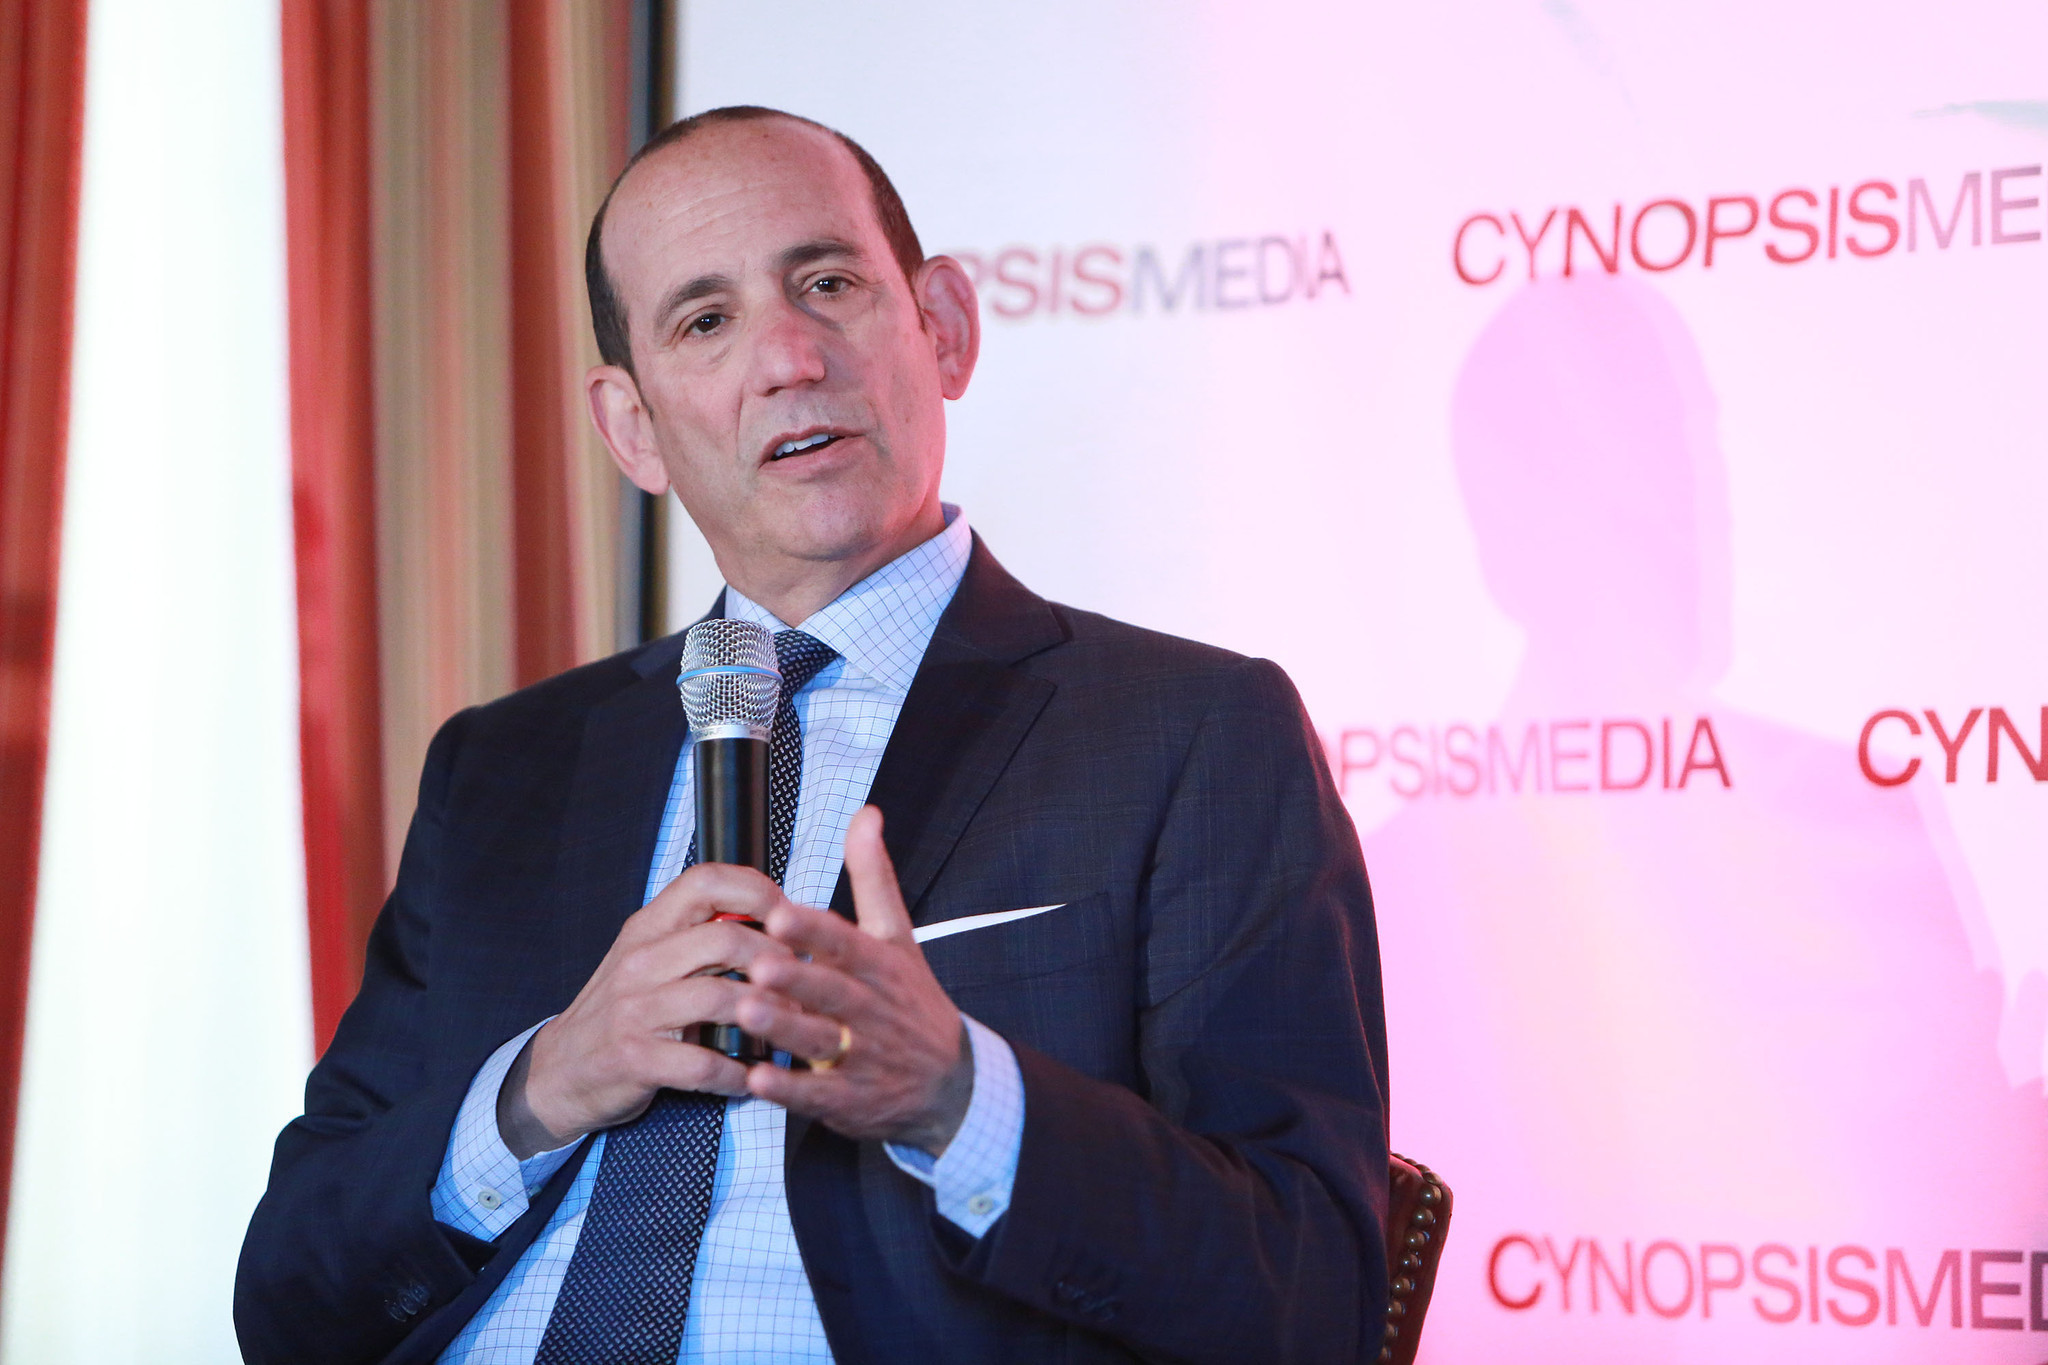 Os-mls-commissioner-don-garber-gives-state-of-the-league-address-20161210